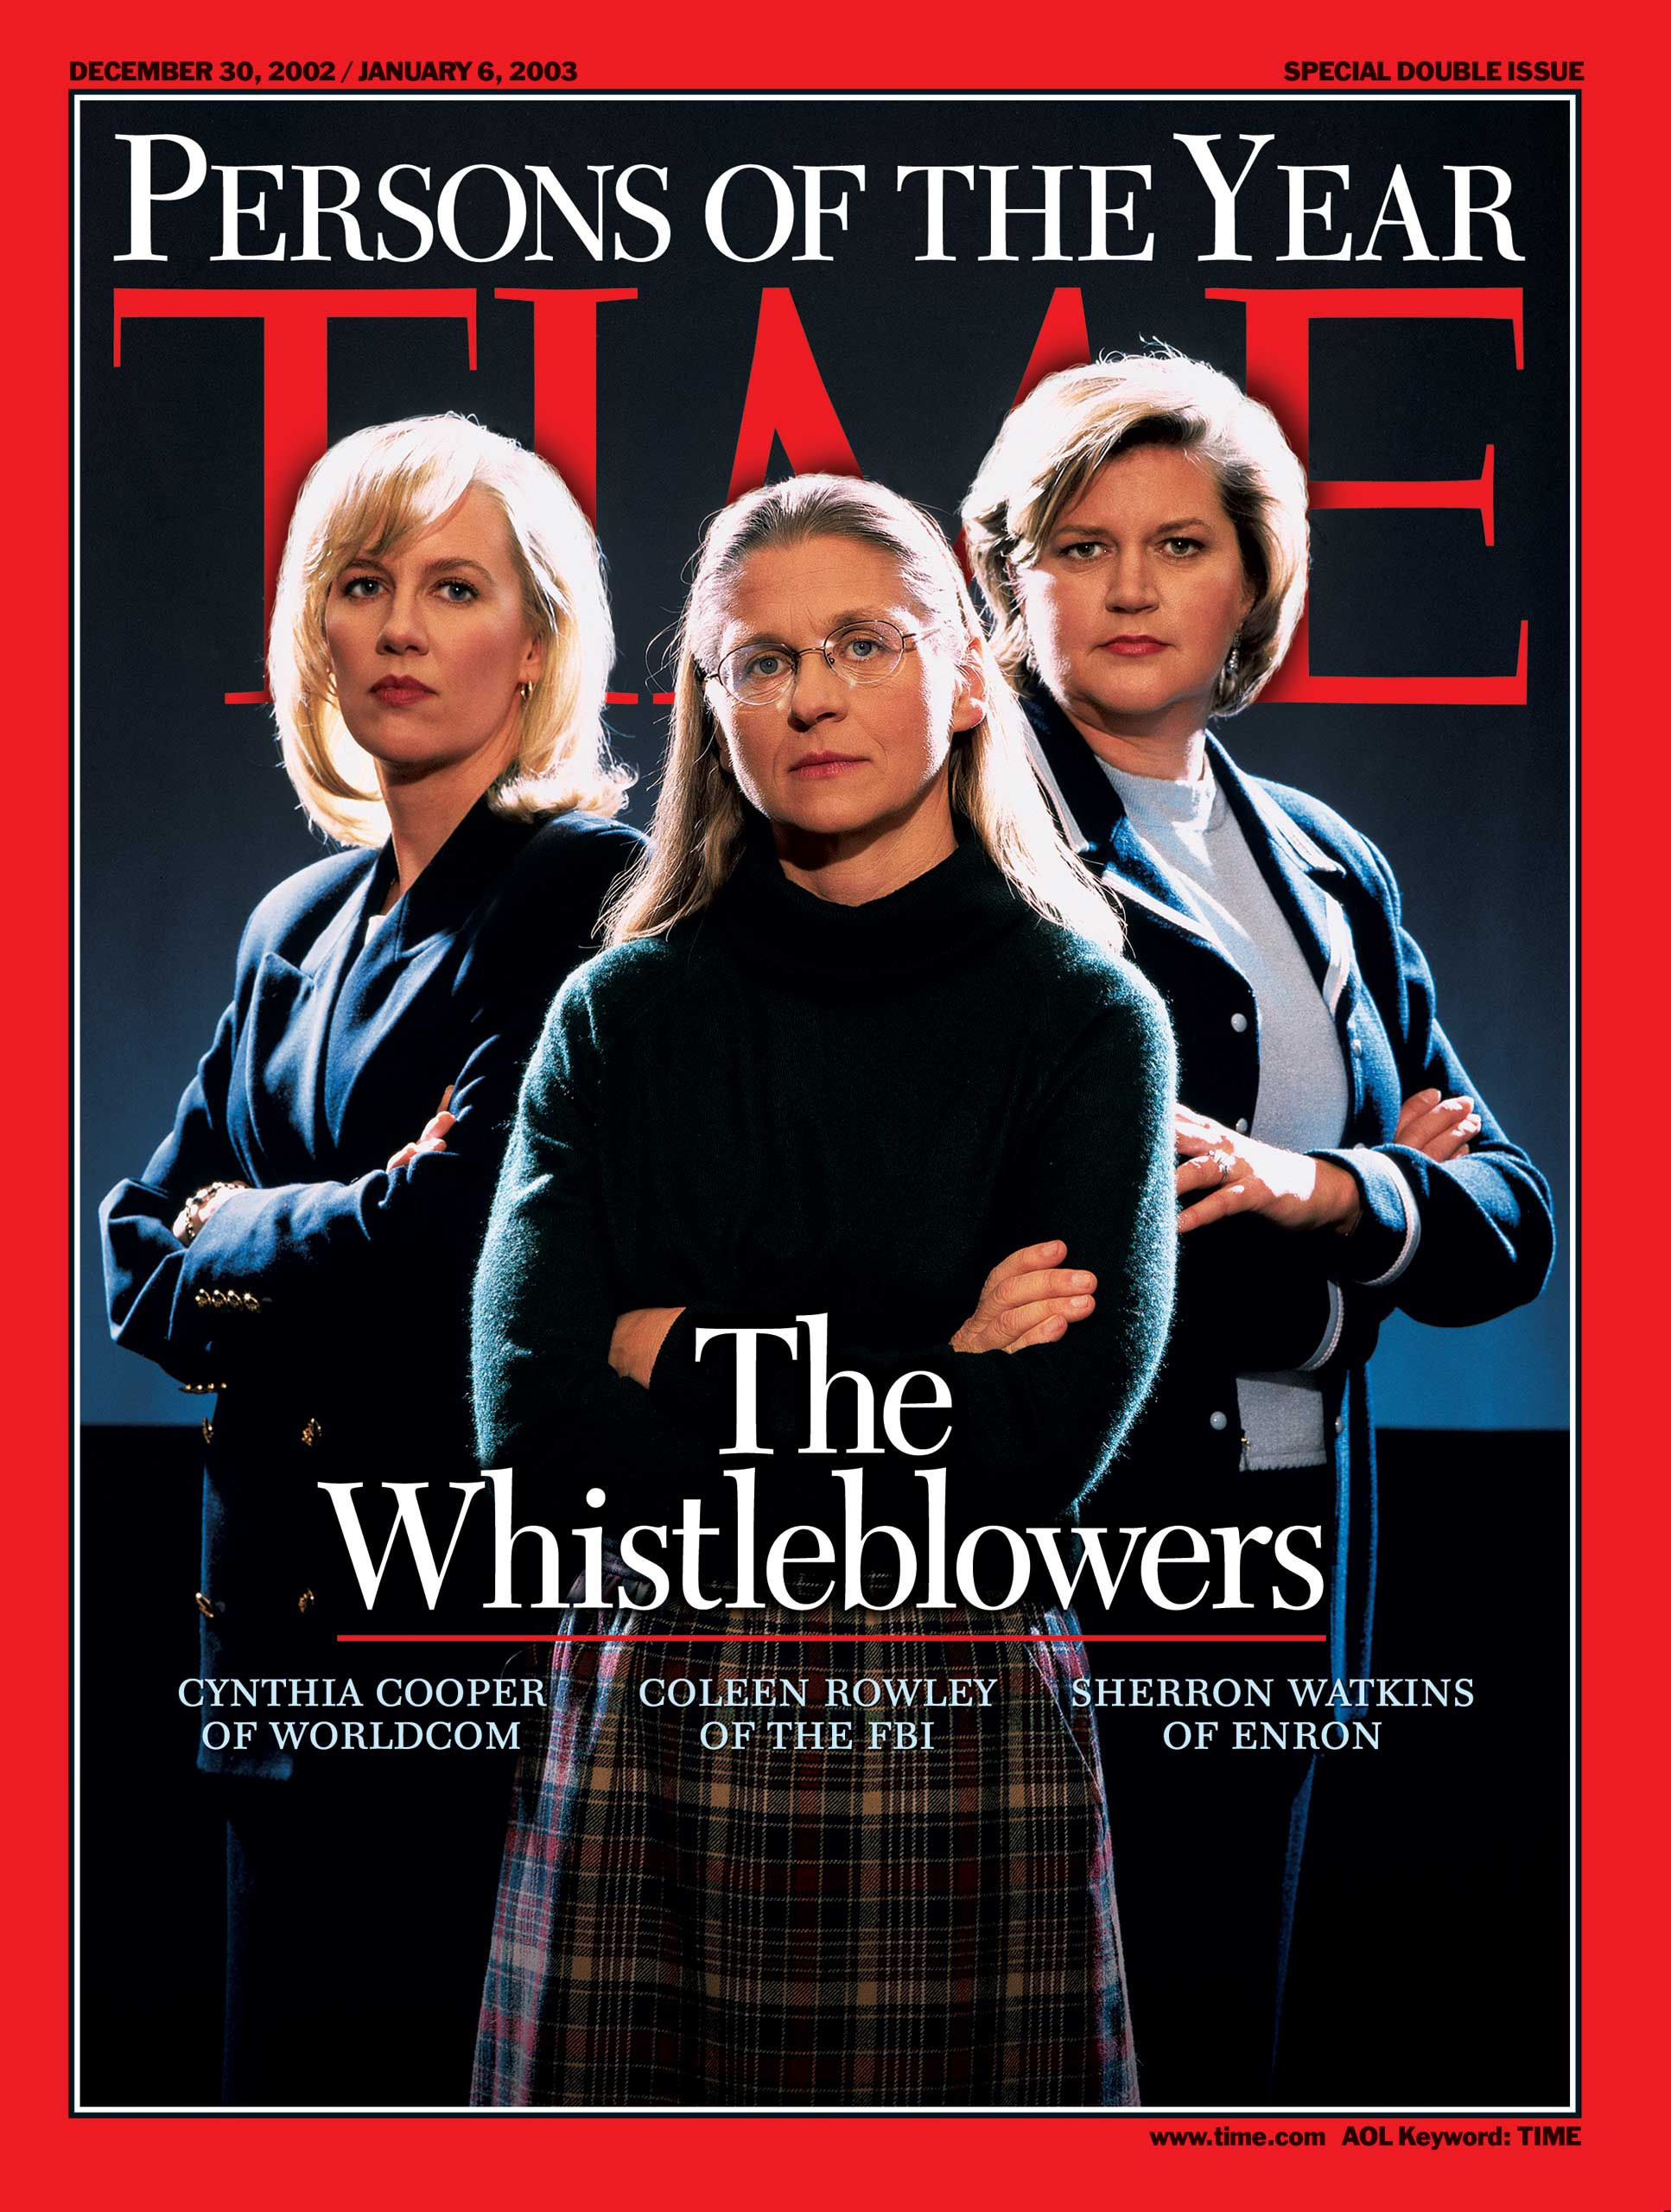 2002: The Whistleblowers: Cynthia Cooper, Coleen Rowley and Sherron Watkins